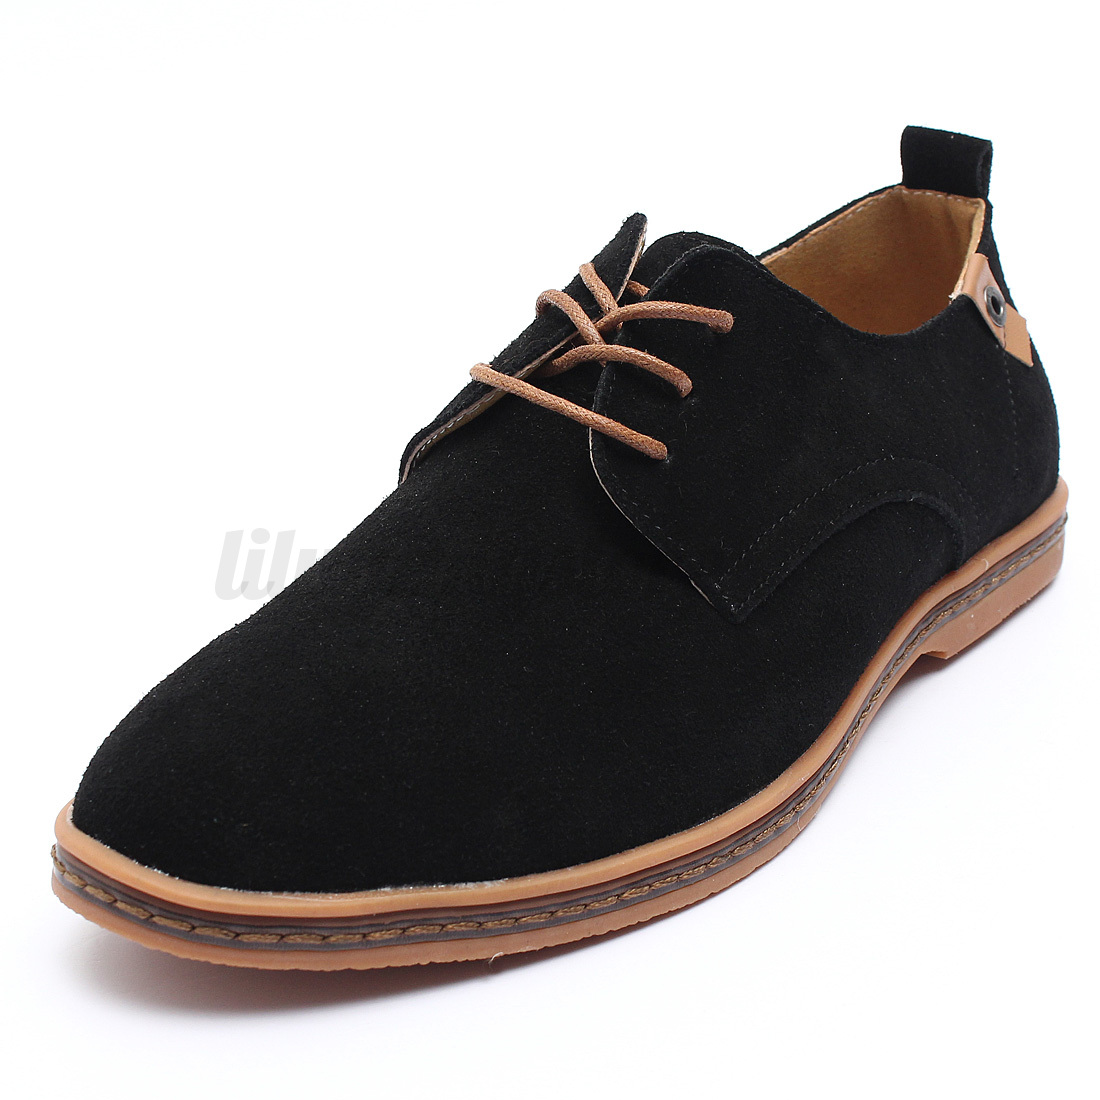 2016 Fashion Suede European Style Leather Business Shoes Menu0026#39;s Casual Oxfords | EBay